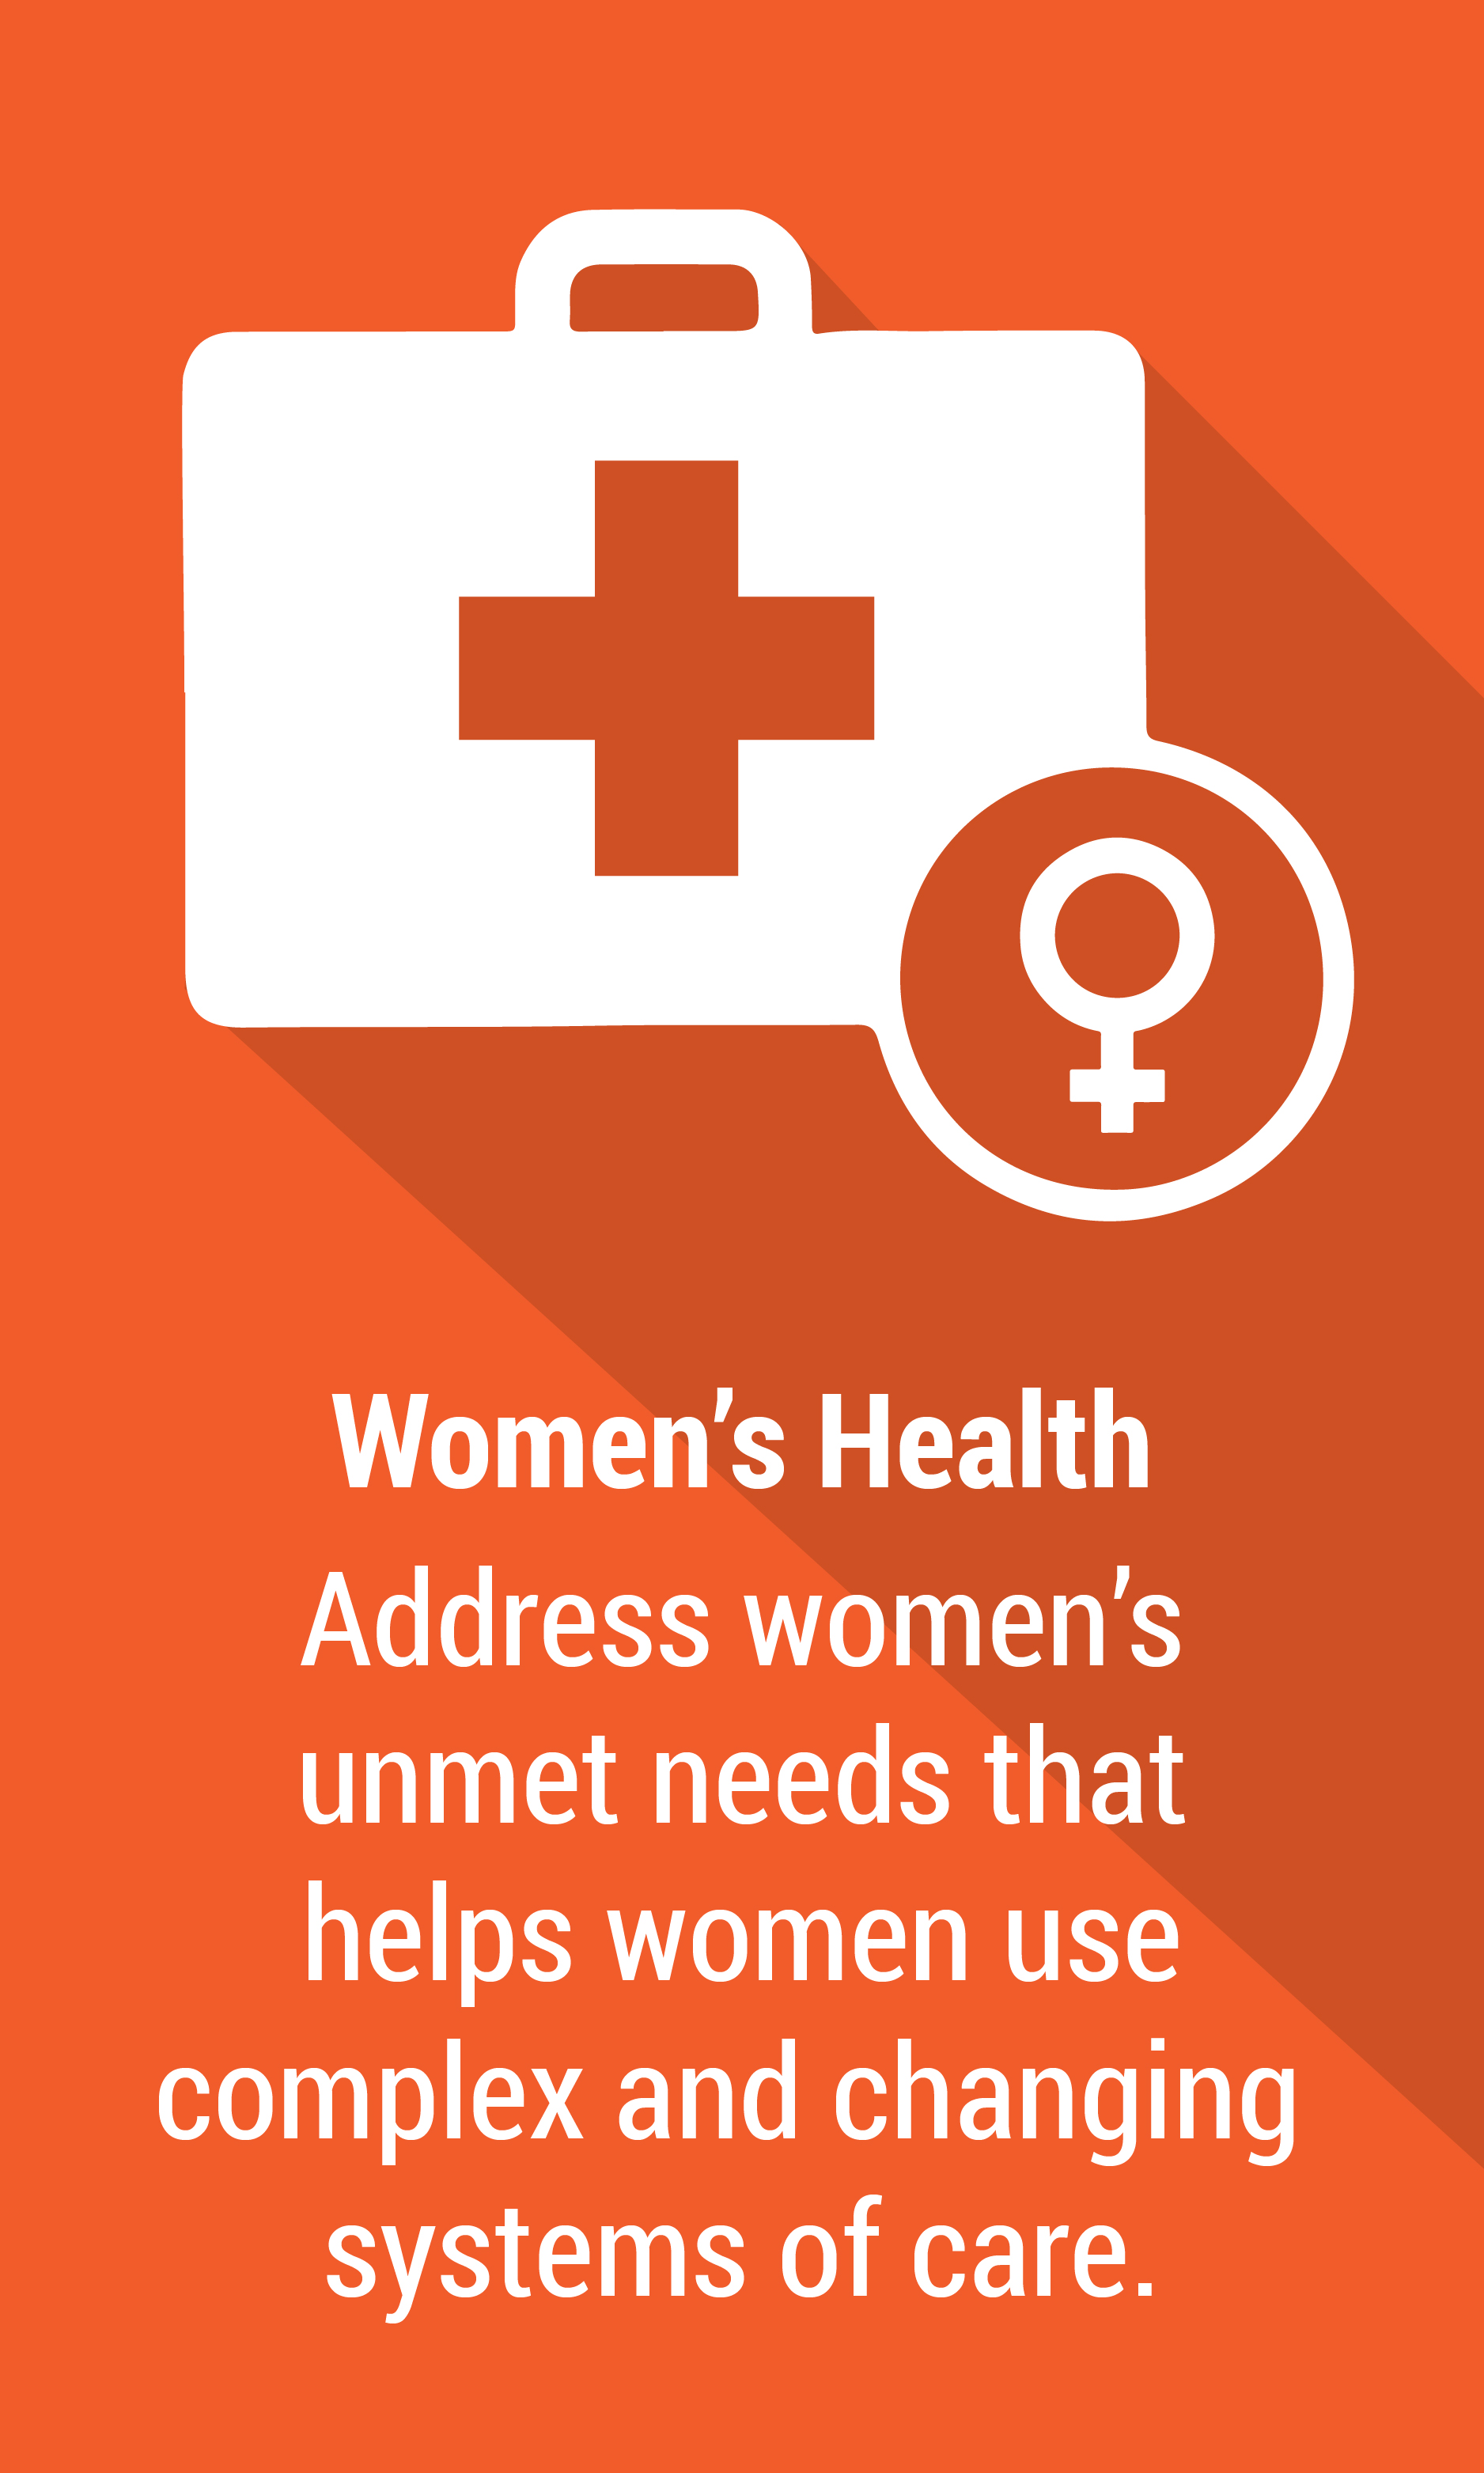 Women's Health - Addressing the Issues